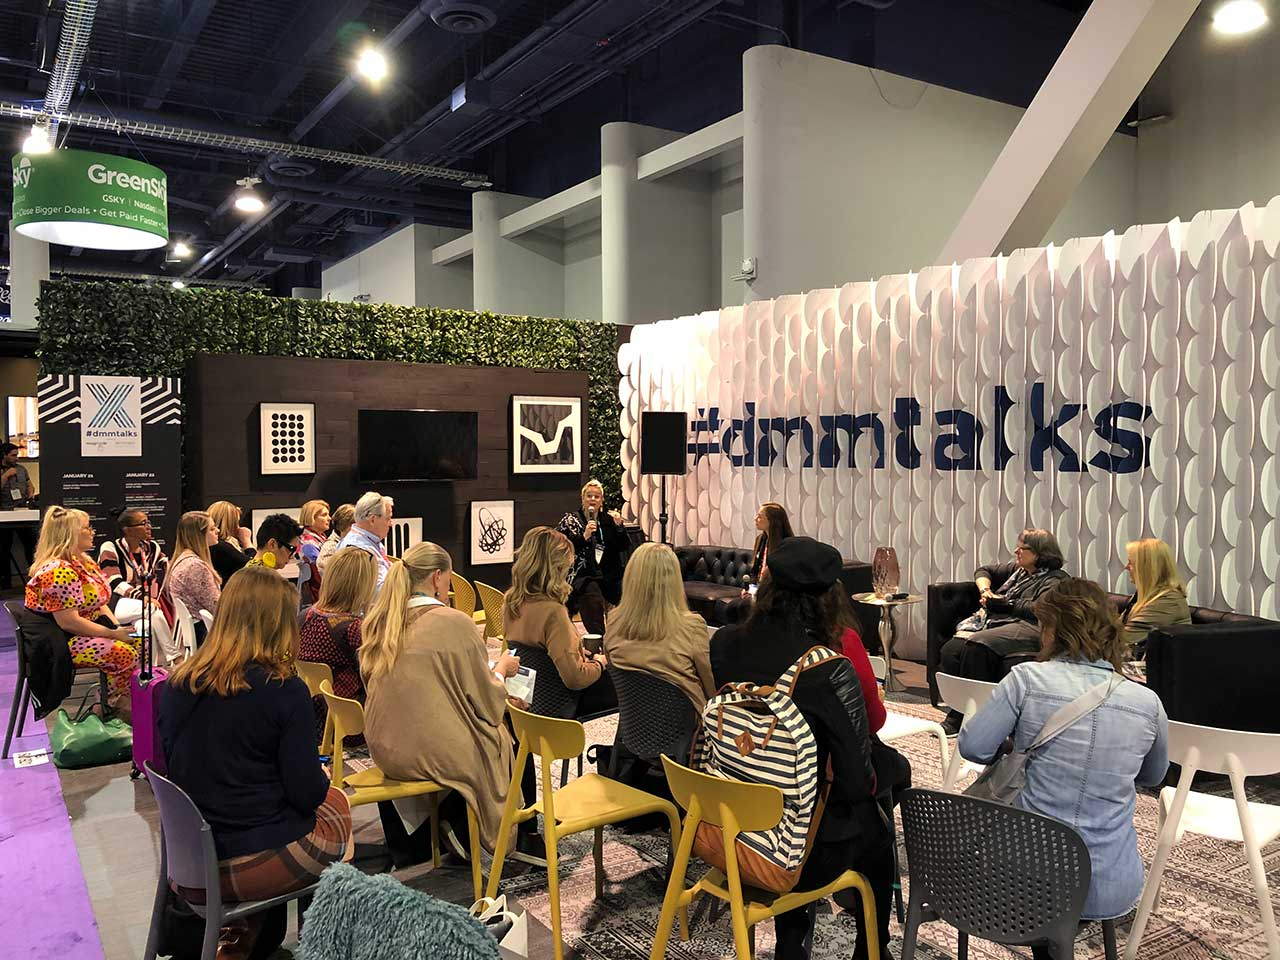 DM 15th Anniversary: Looking Back at Trade Show Highlights